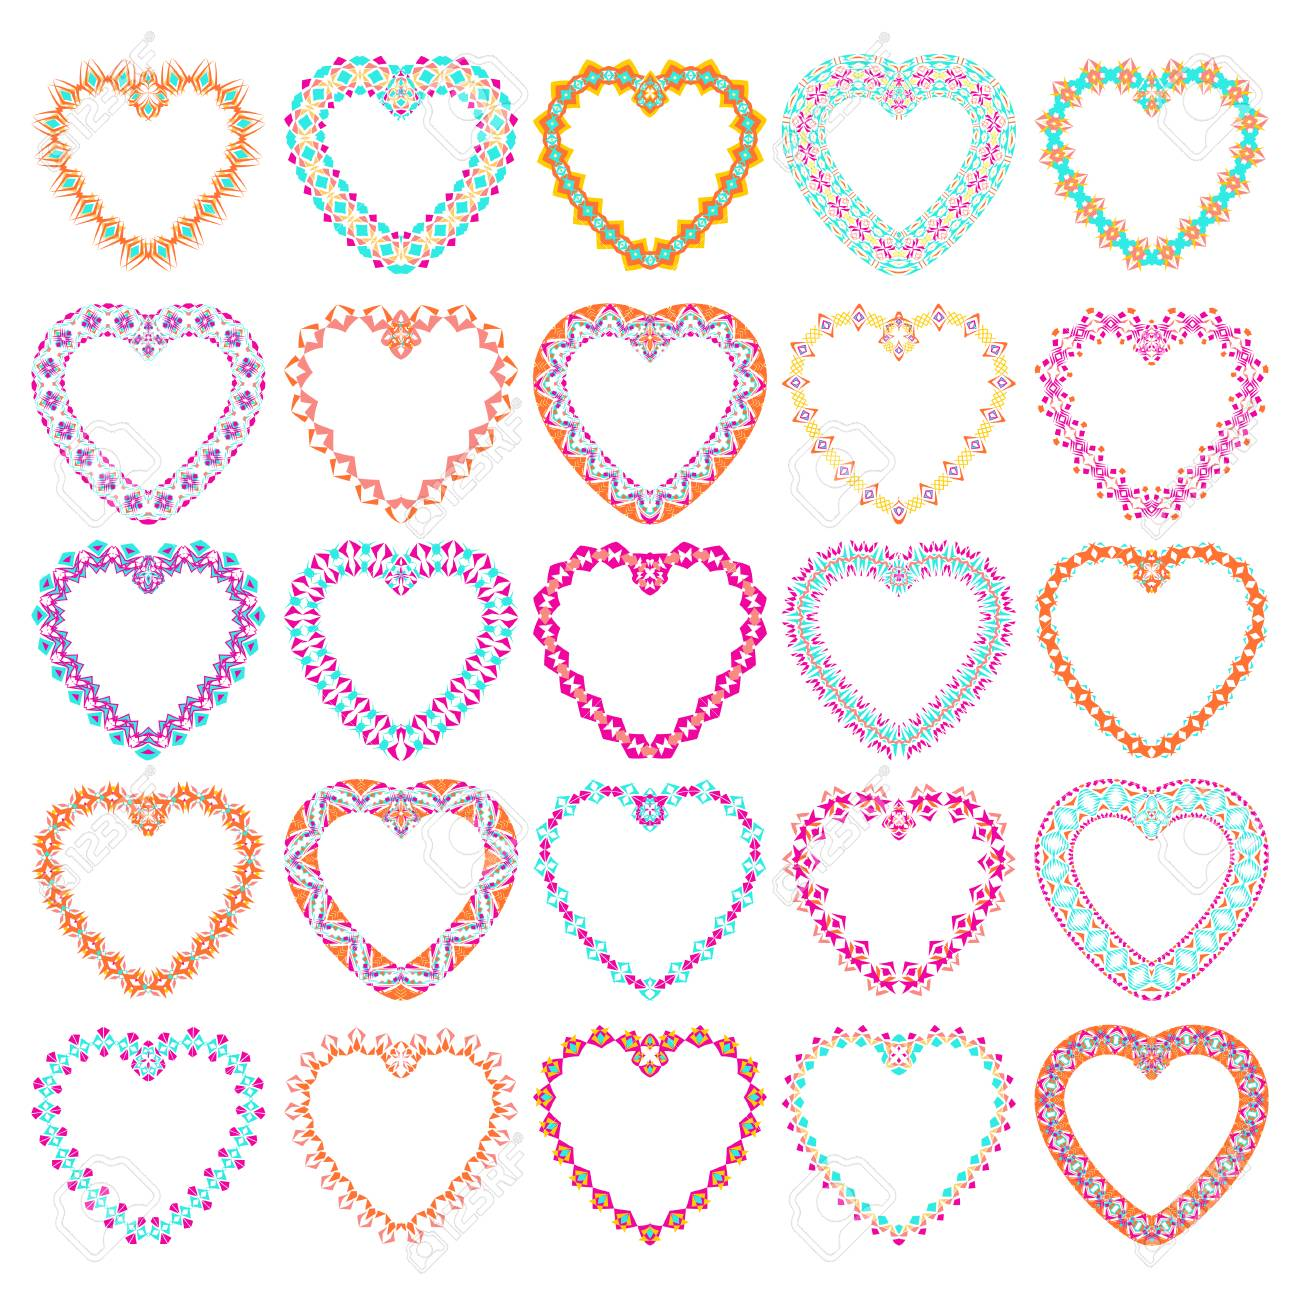 cdec3cdf4c Vector - Vector set of tribal colorful heart shaped decorative frames for  design. Aztec ornamental style. Ethnic native american indian ornaments